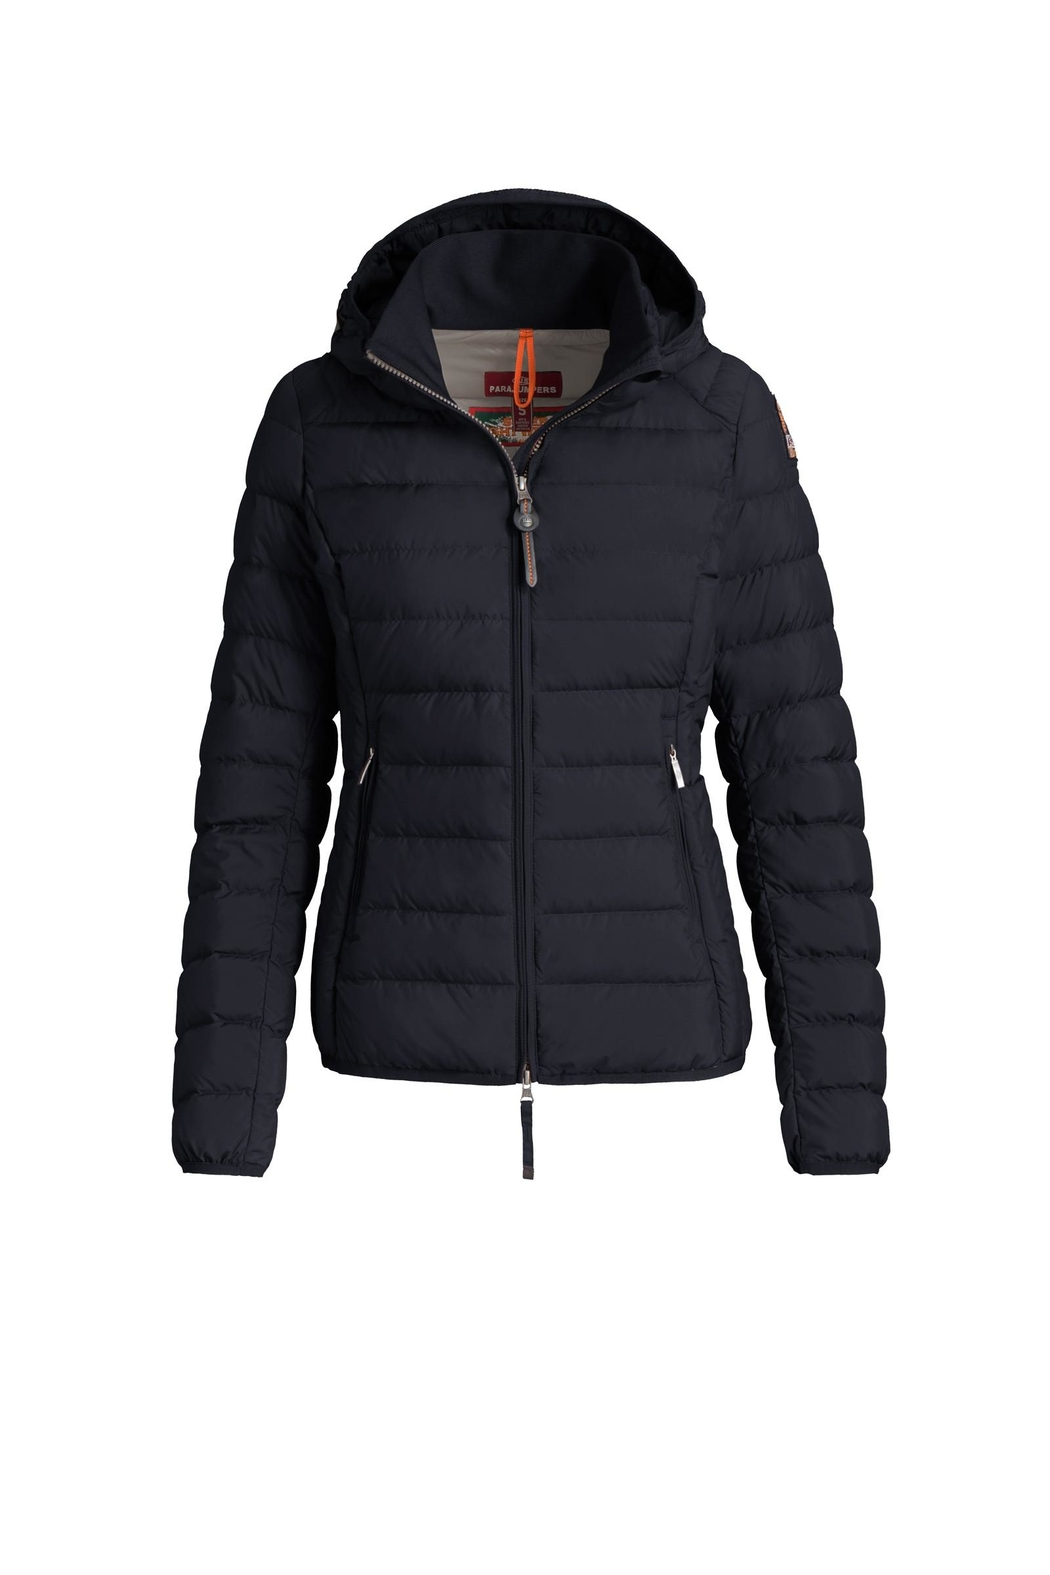 parajumpers juliet down jacket